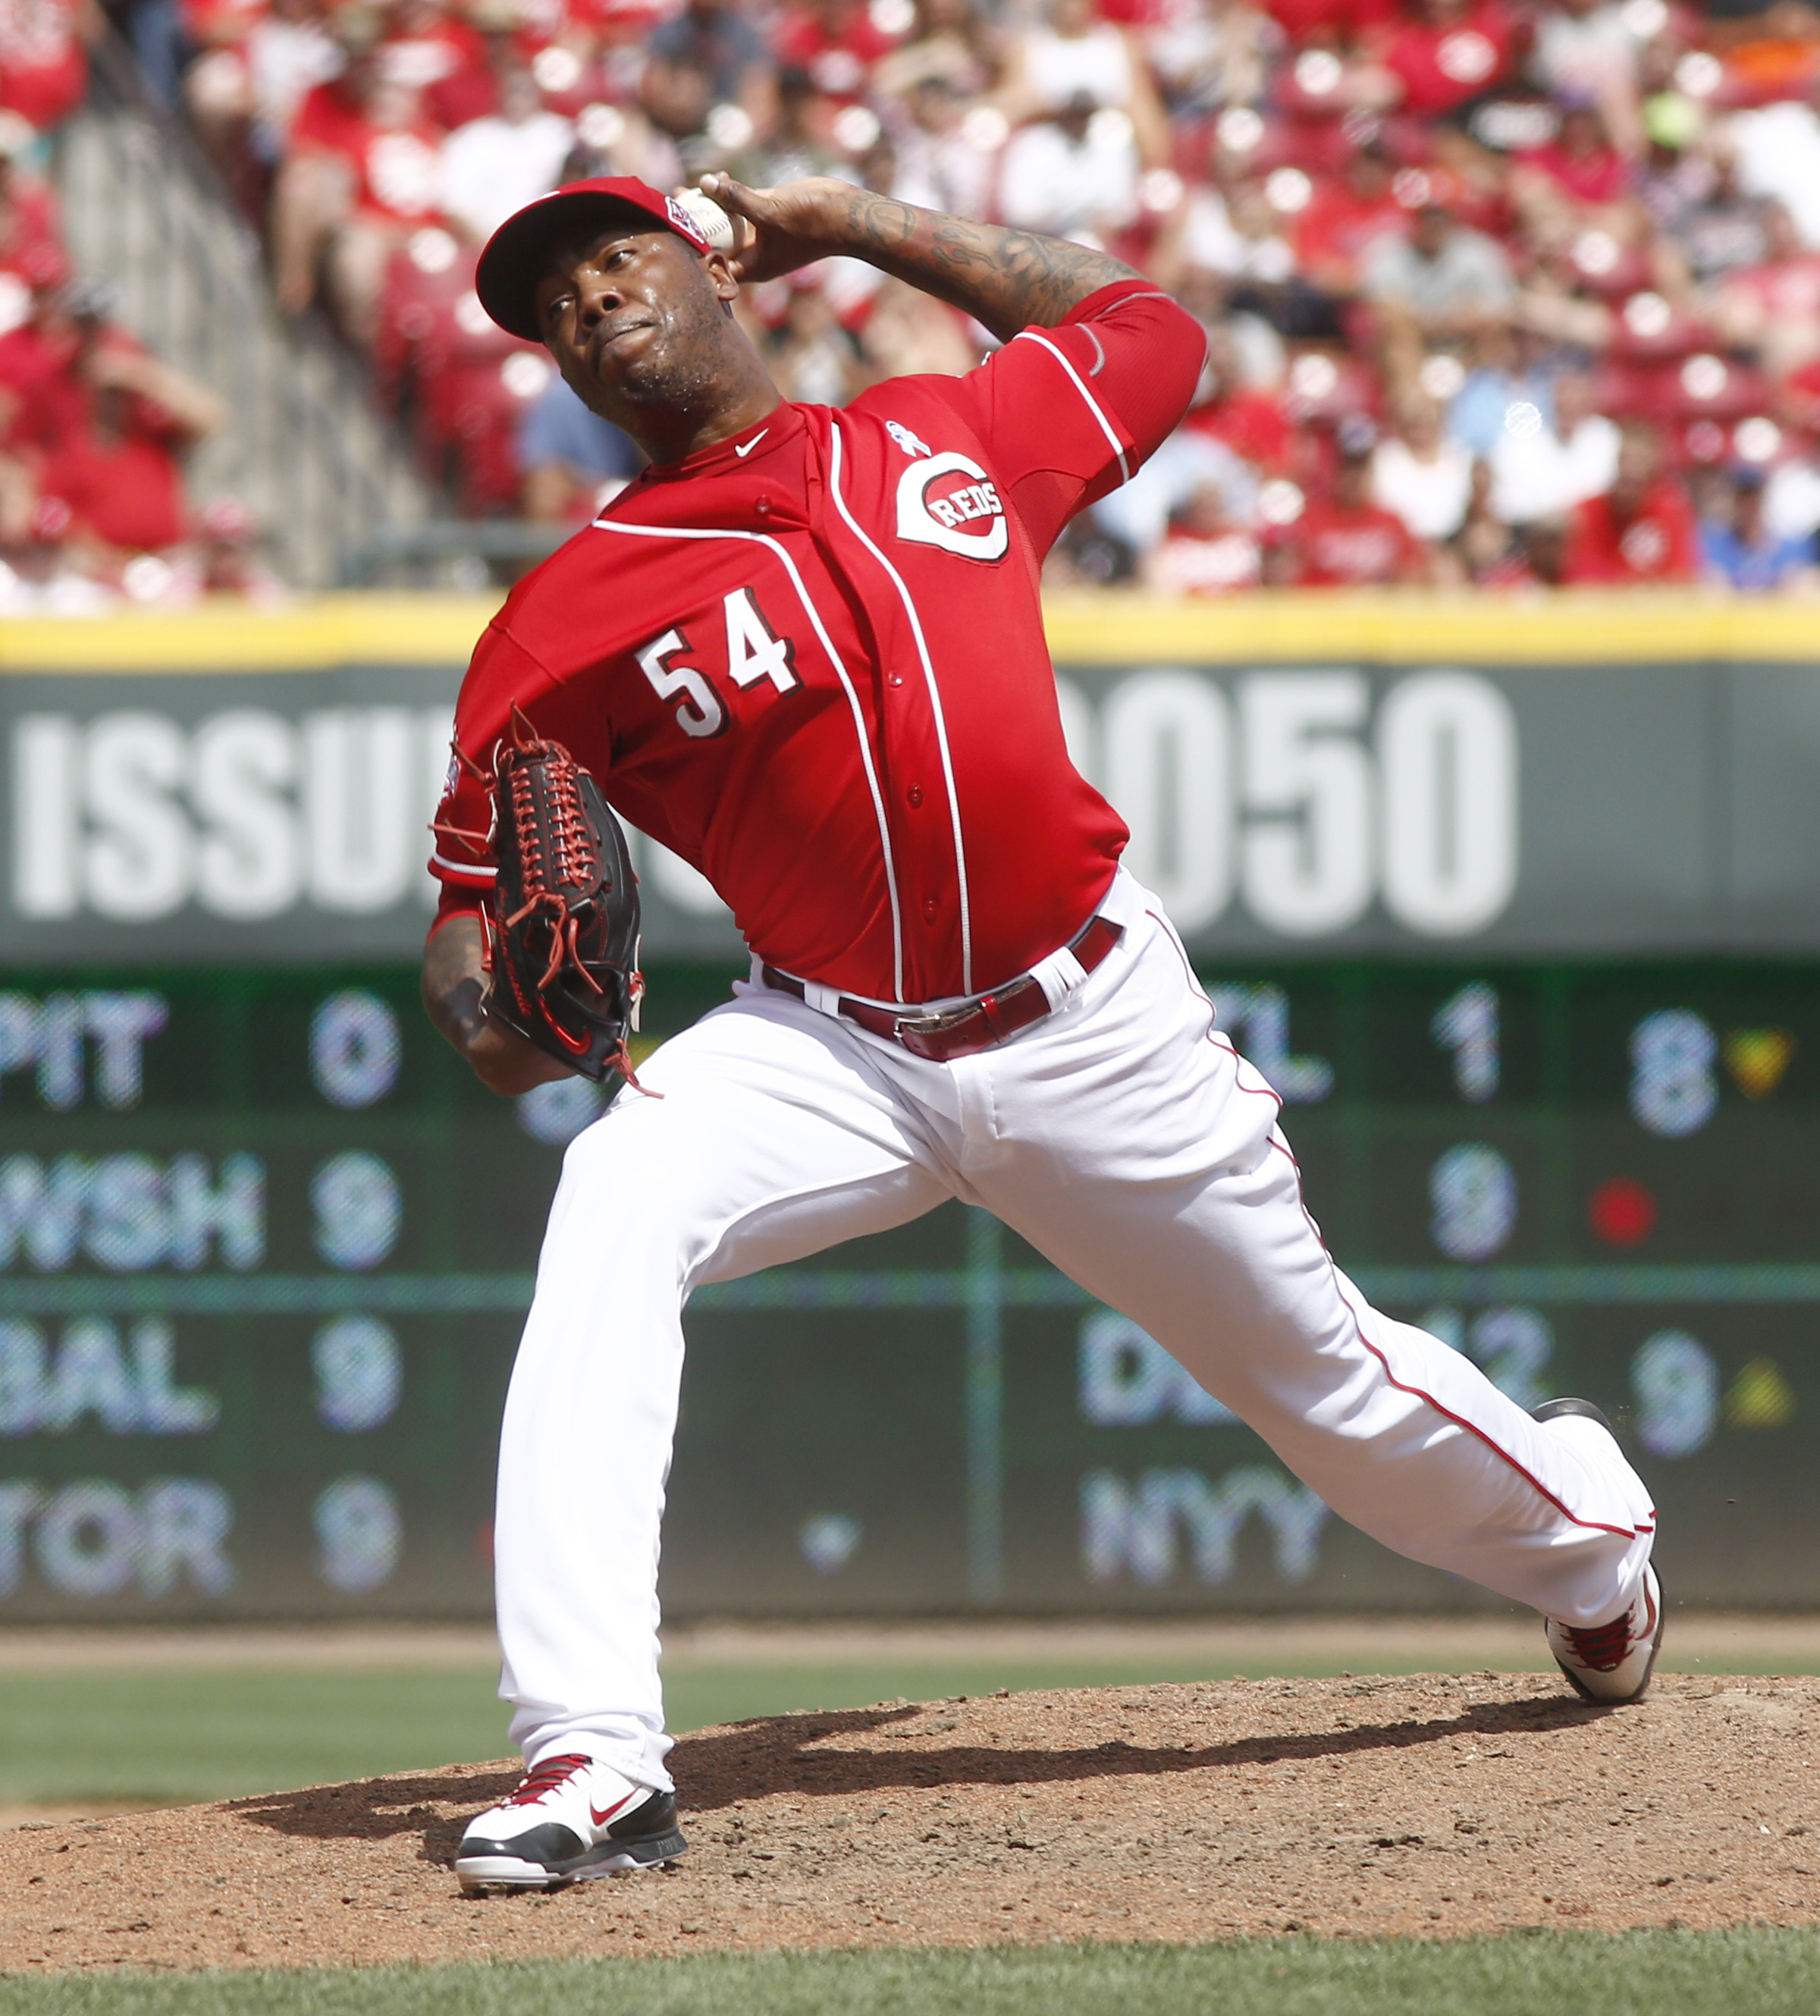 Cincinnati Reds relief pitcher Aroldis Chapman throws against the Miami Marlins in the ninth inning of a baseball game, Sunday, June 21, 2015, in Cincinnati. The Reds won 5-2. (AP Photo/David Kohl)